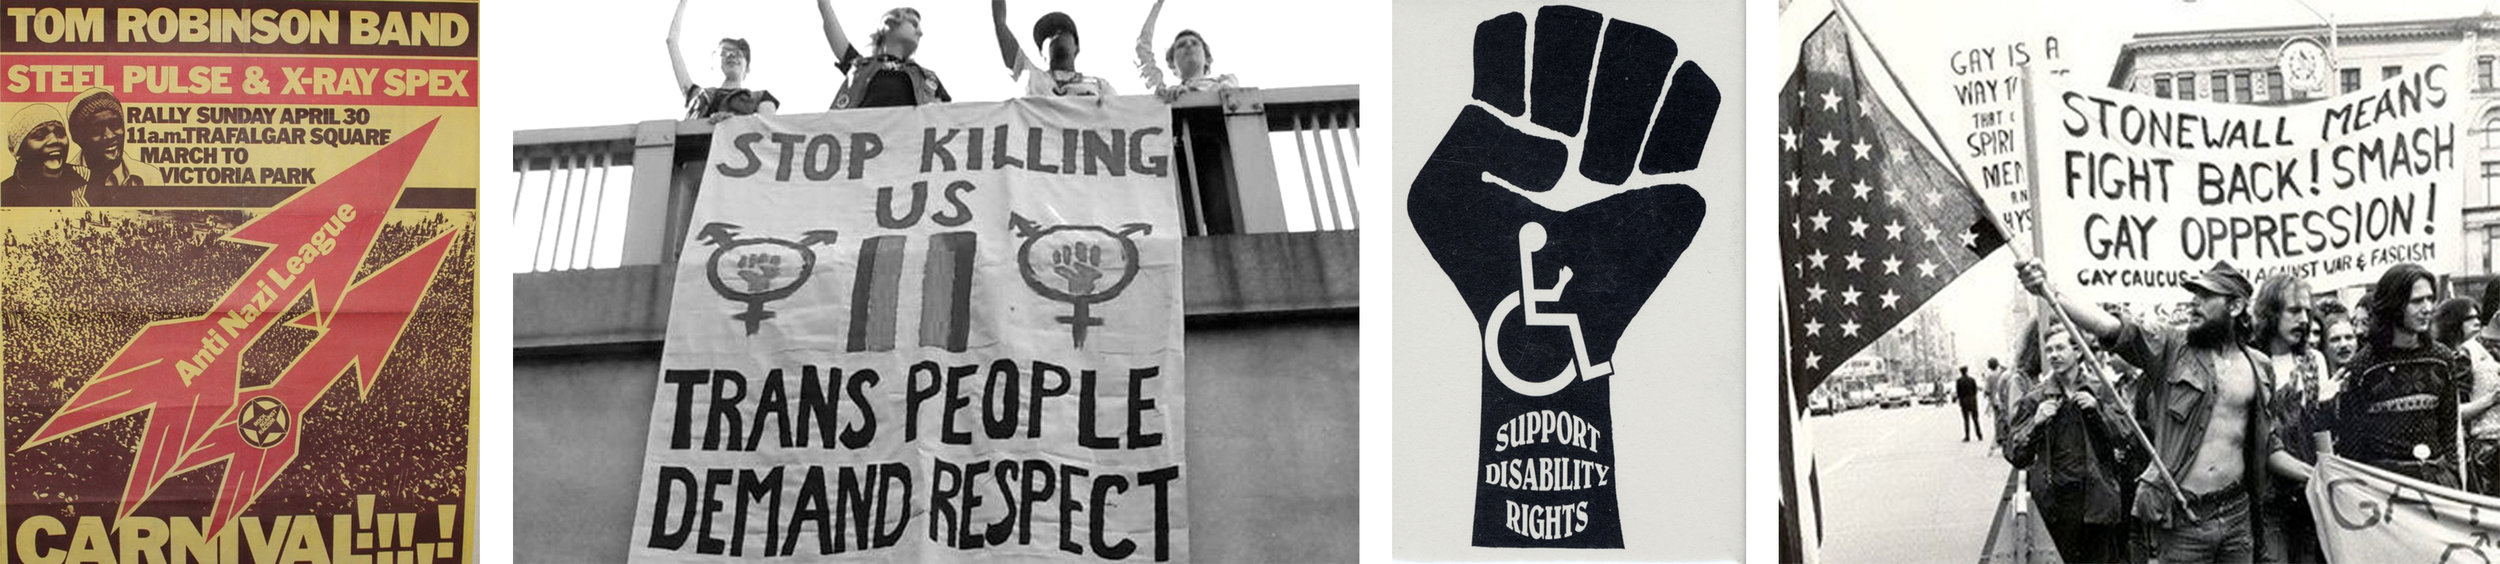 Rock Against Racism/Anti-Nazi League poster (UK), Trans Rights protest, Disability Rights poster (1970s), Gay Liberation protest following Stonewall.